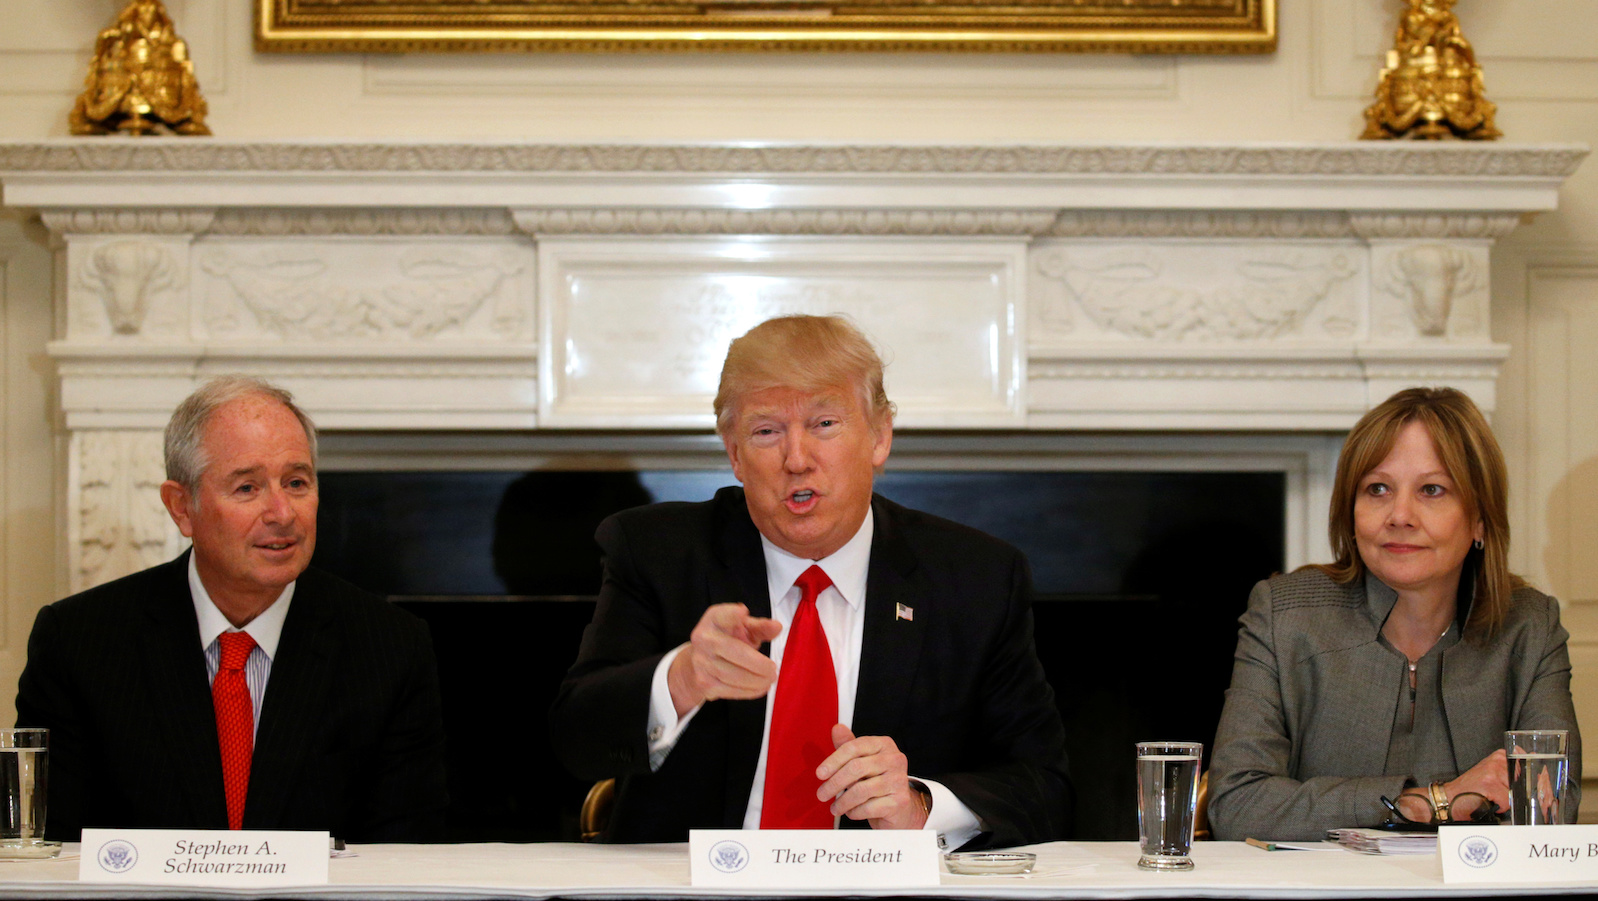 Flanked by Blackstone CEO Stephen Schwarzman (L) and General Motors CEO Mary Barra (R), U.S. President Donald Trump holds a strategy and policy forum with chief executives of major U.S. companies at the White House in Washington, U.S. February 3, 2017.  REUTERS/Kevin Lamarque      TPX IMAGES OF THE DAY - RC1DE01F0800